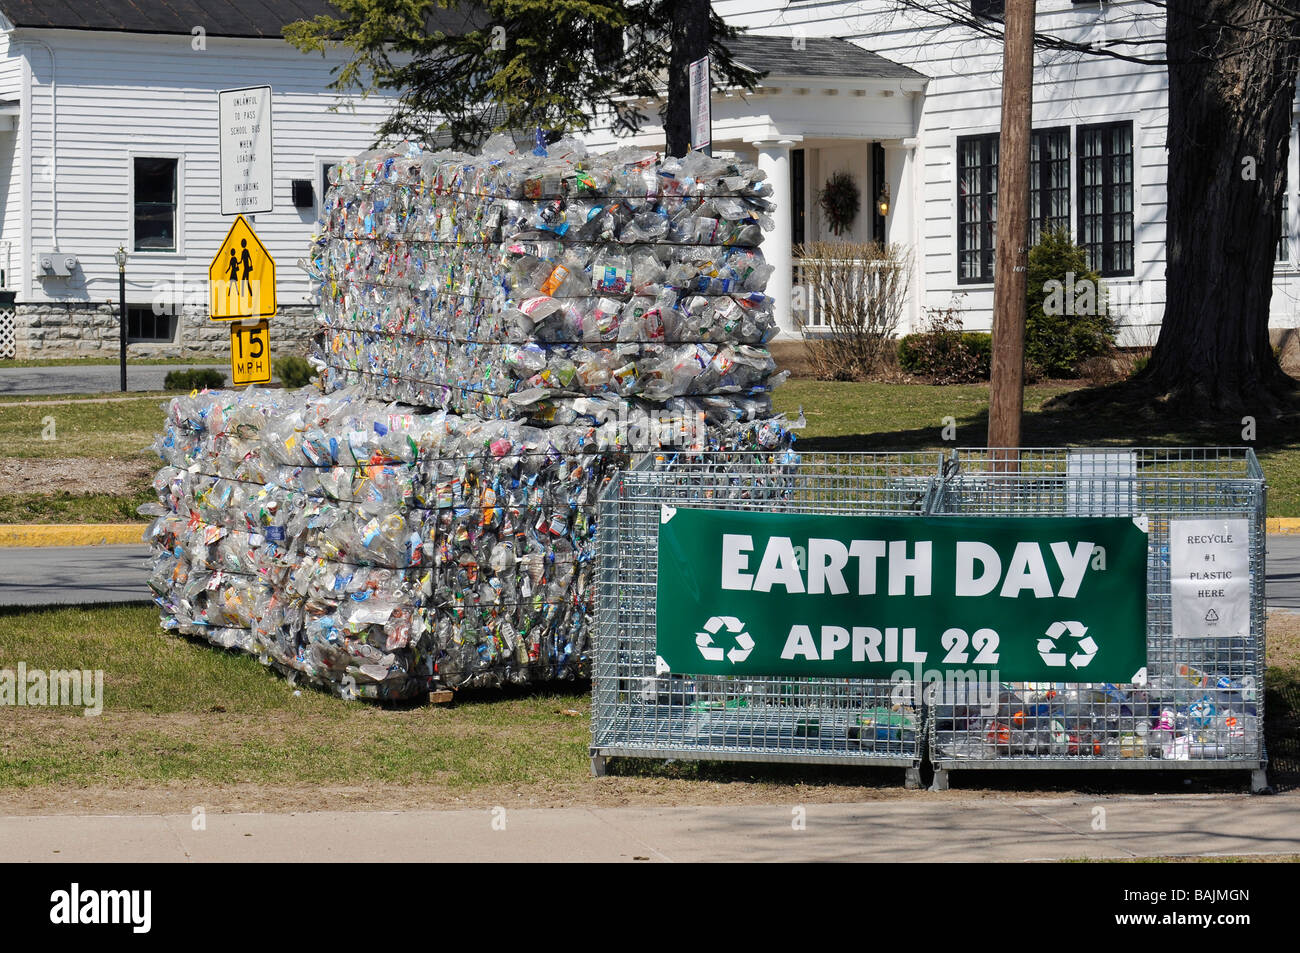 Earth day display of material ready for recycling in Lowville New York - Stock Image